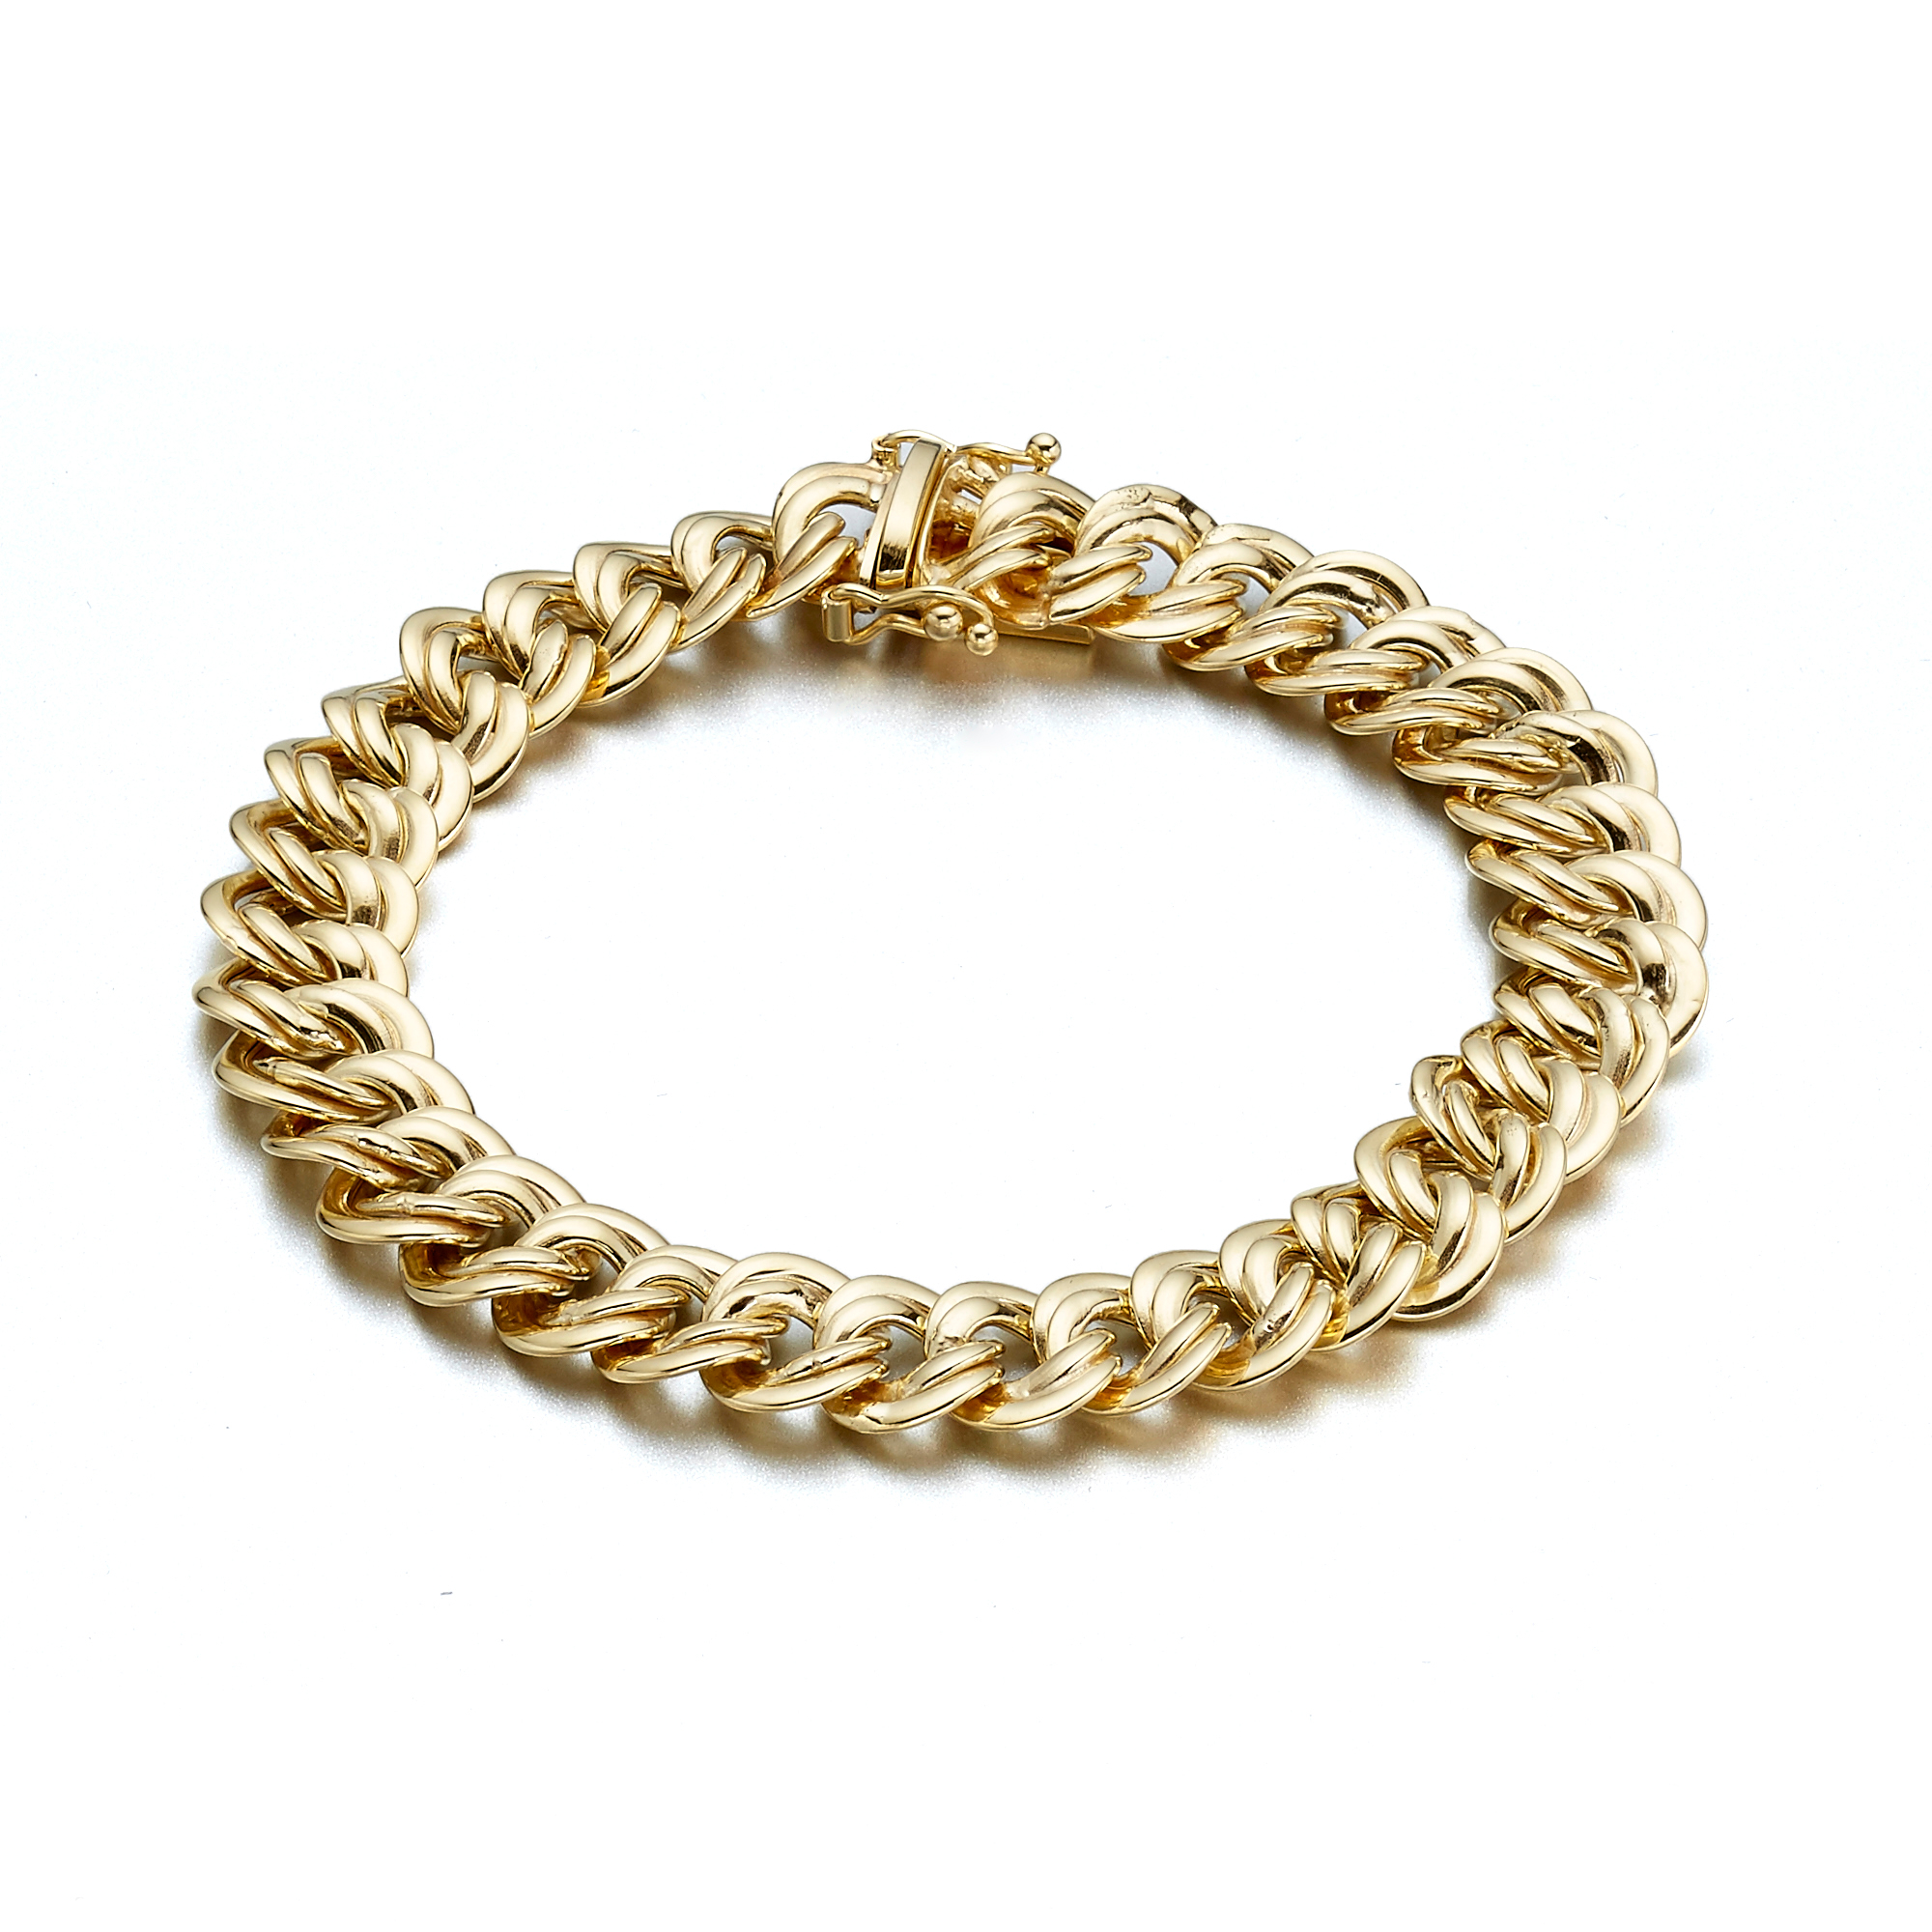 Gold Double Curb Link Bracelet